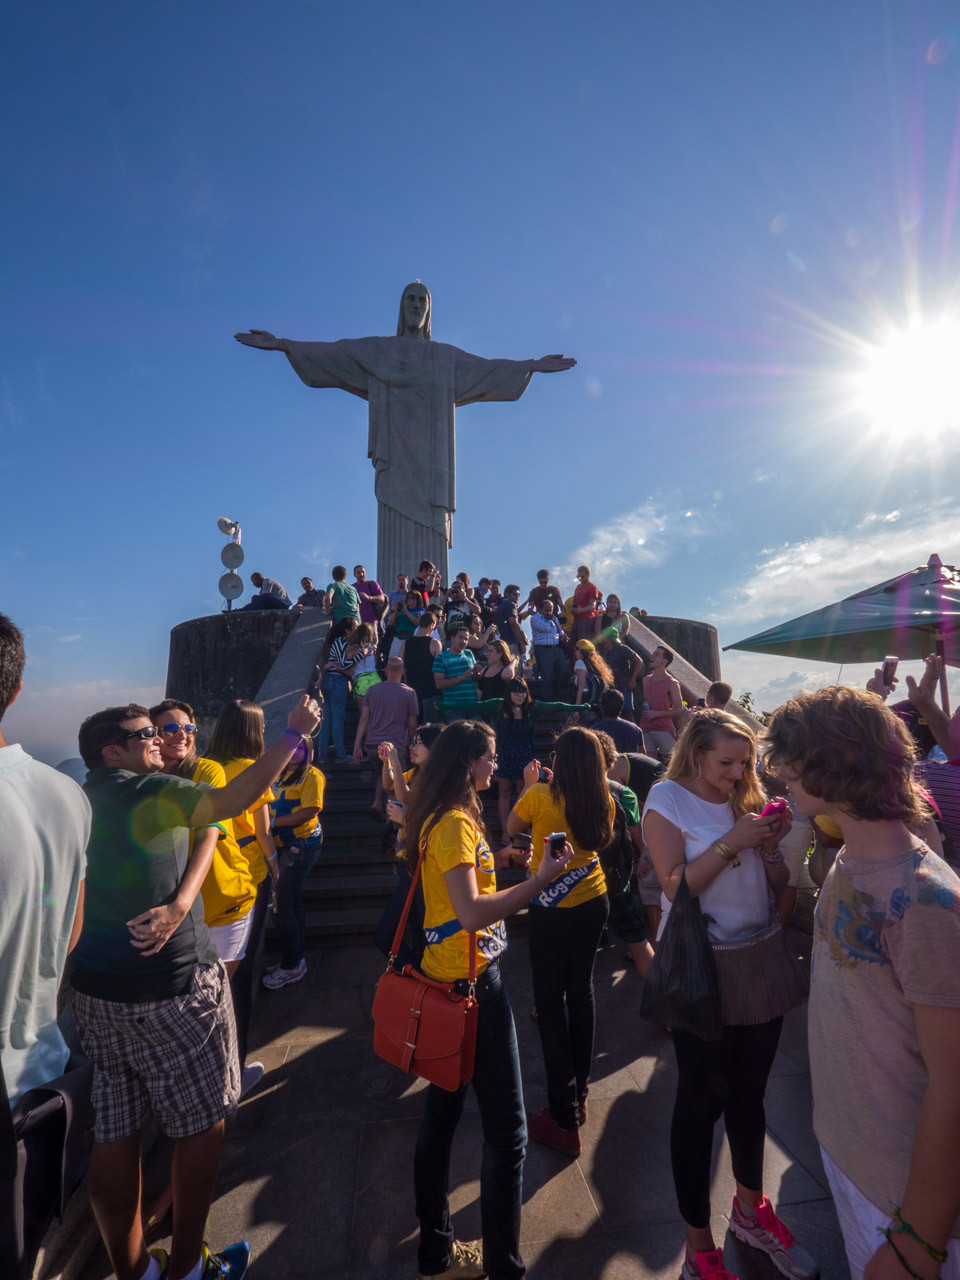 Corcovado (Christ the Redeemer statue) [Brazil, 2014]